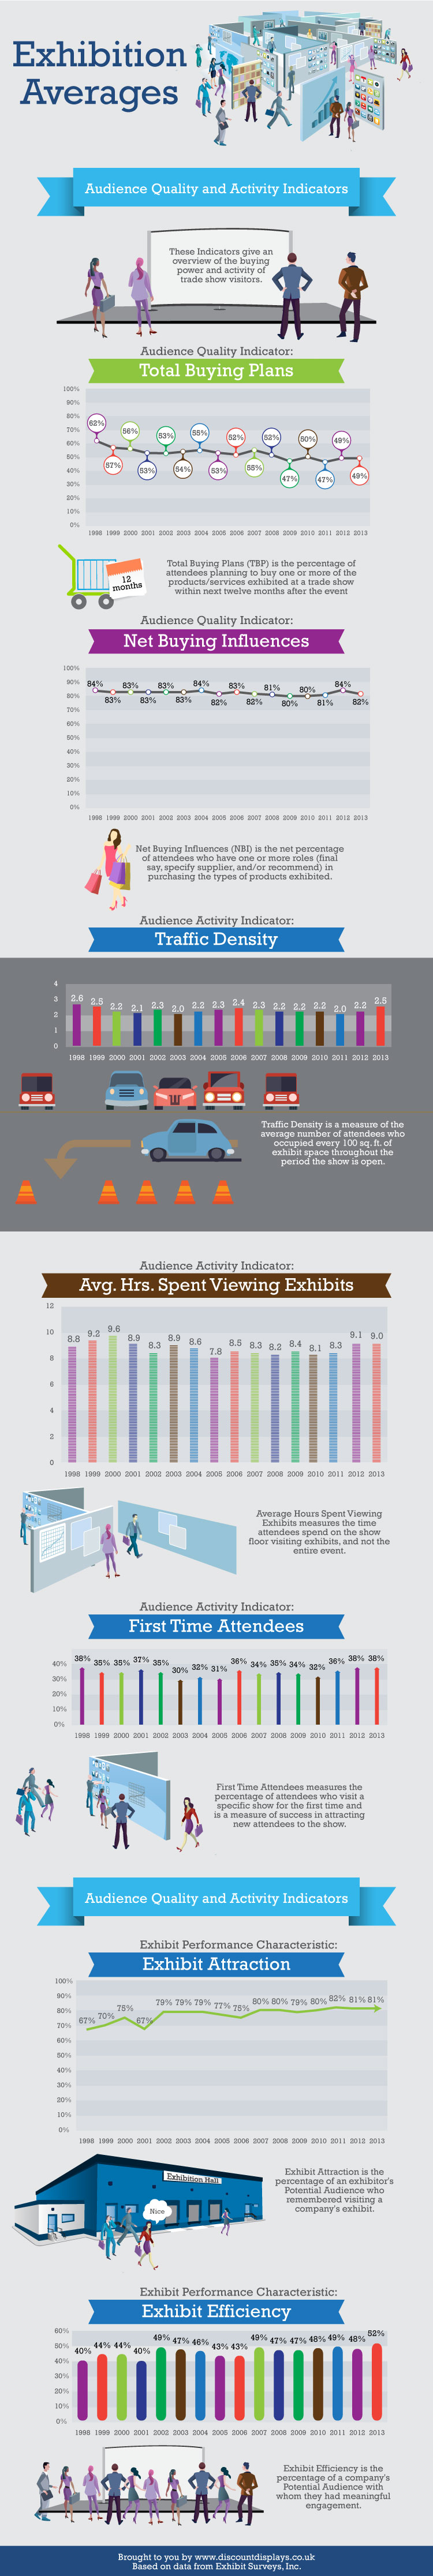 Exhibition Trends and Averages